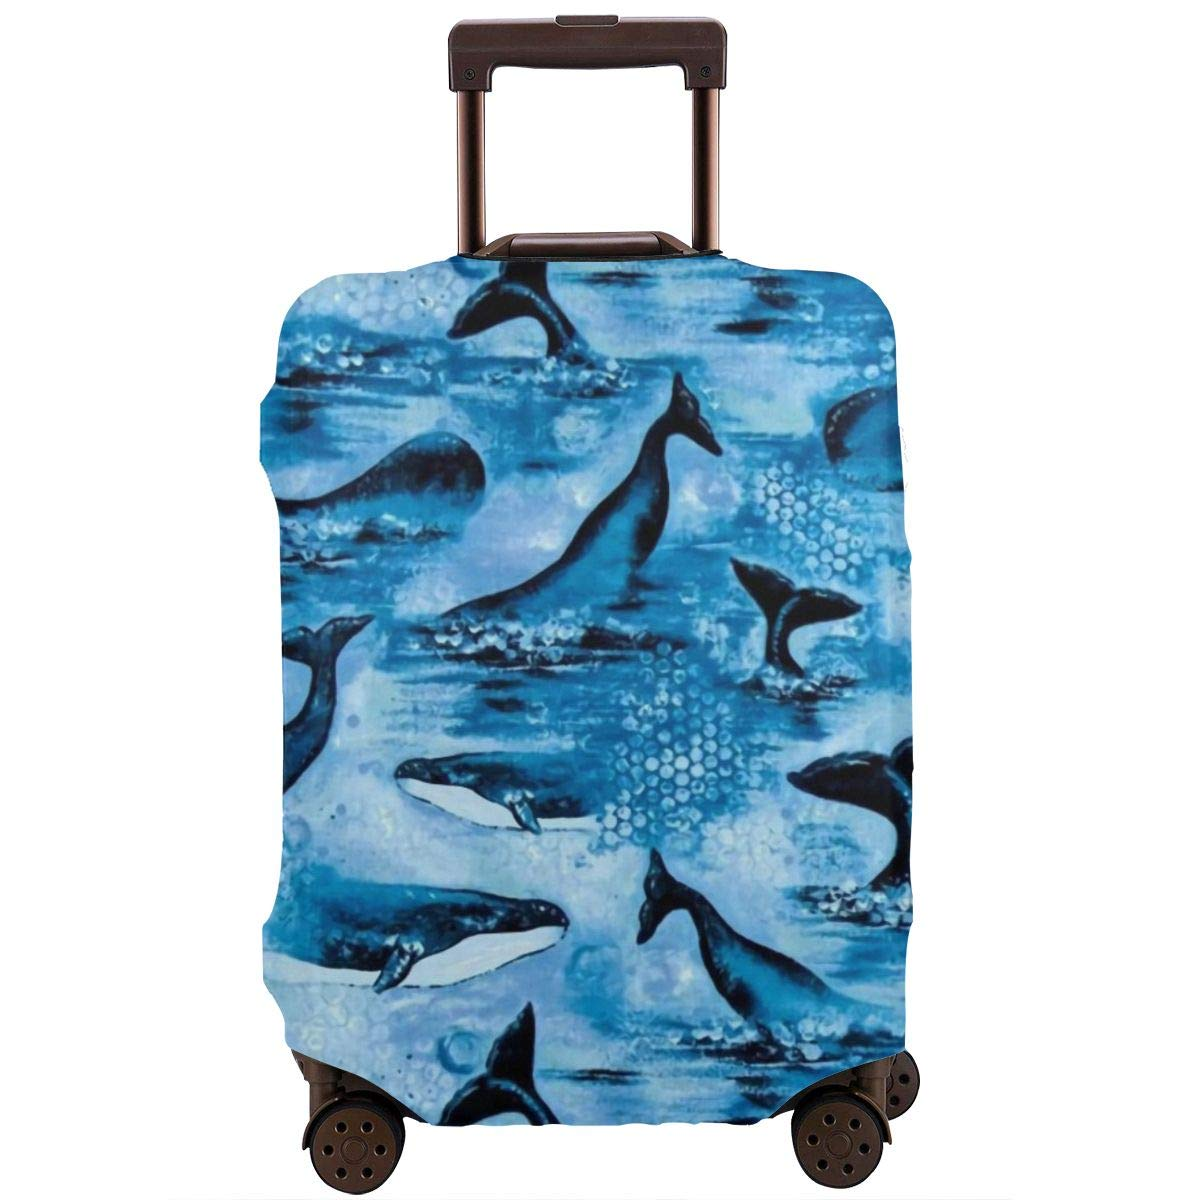 Luggage Cover Protective Washable Suitcase Protector Cover Travel Elastic Spandex Baggage Protector Dolphin Playful Sea Wave Fit 18 To 32 Inch